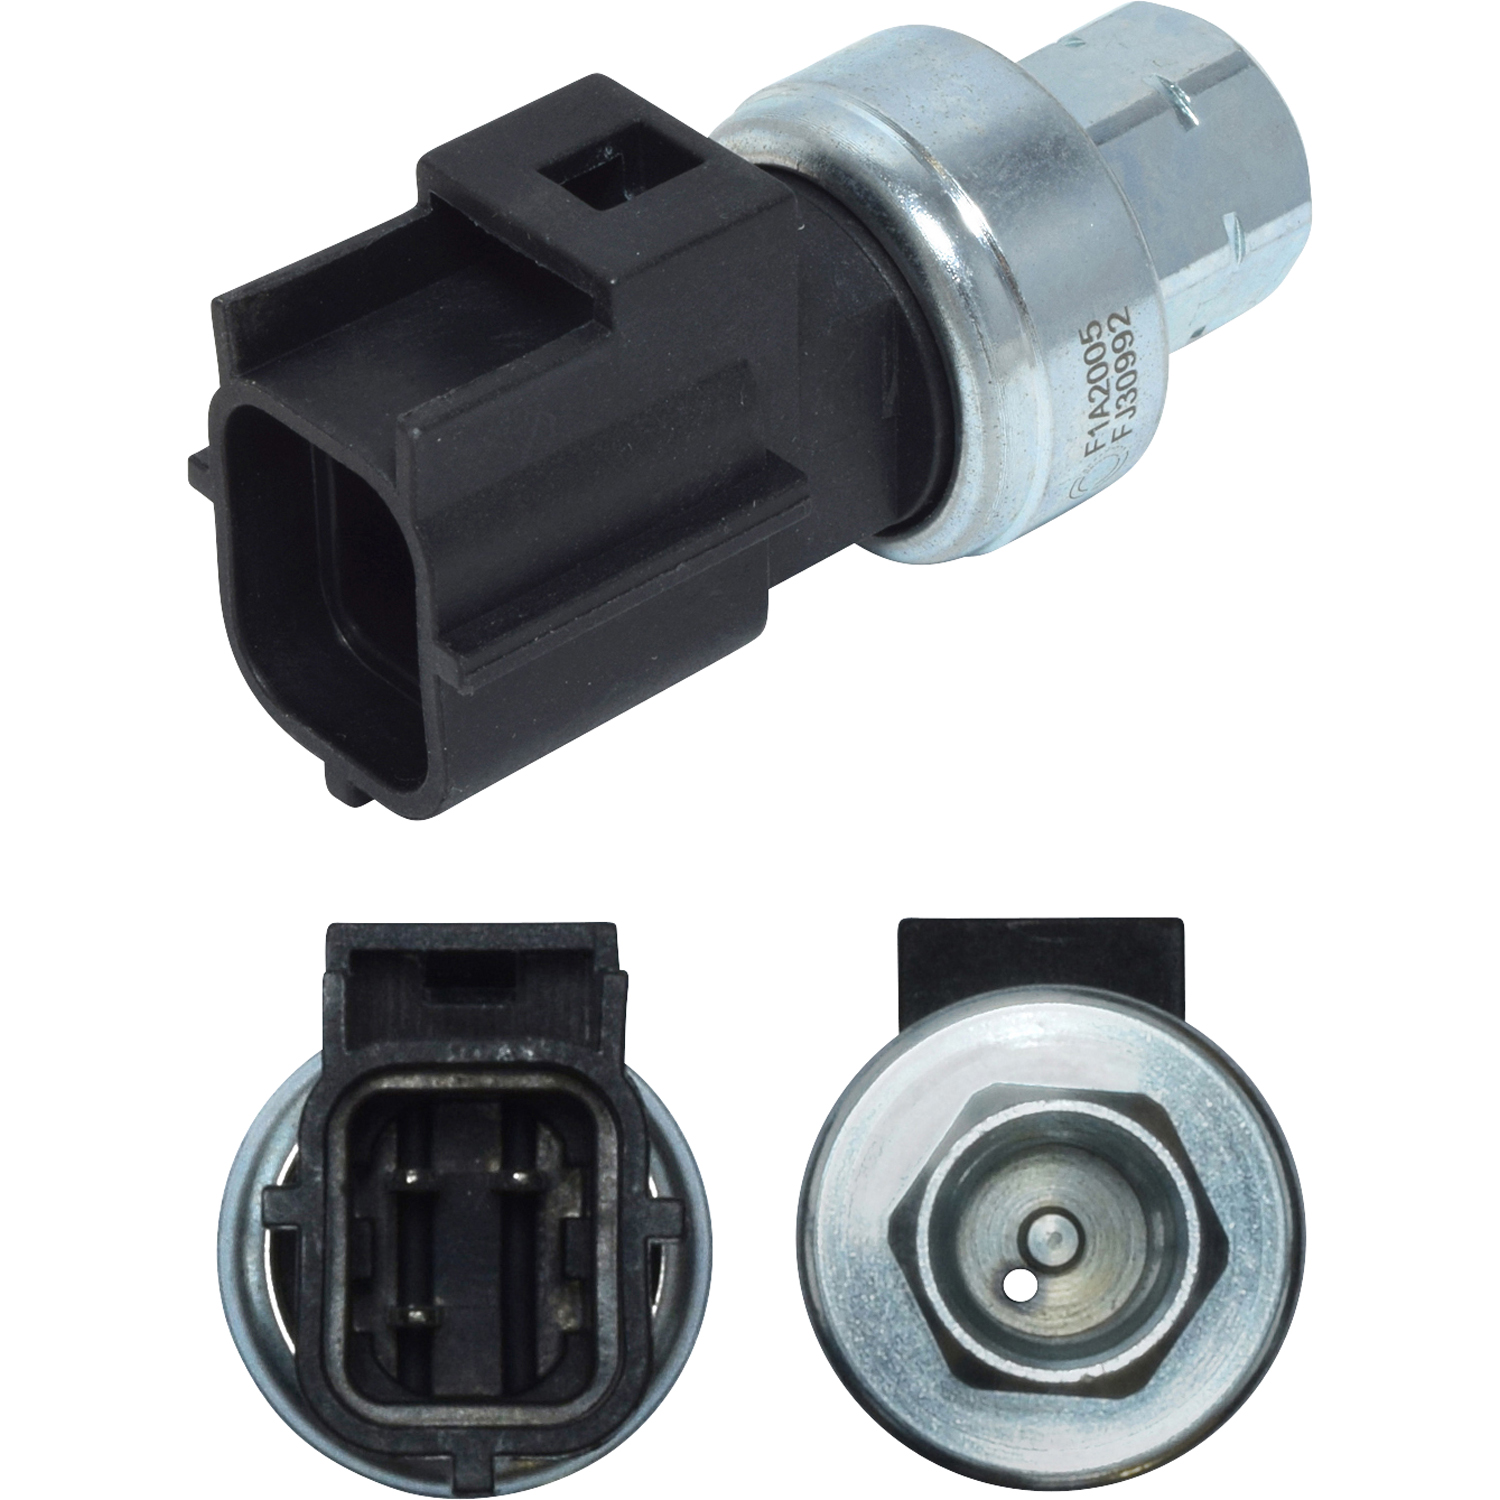 Pressure Transducer SWITCH FOR DODGE TRUCKS